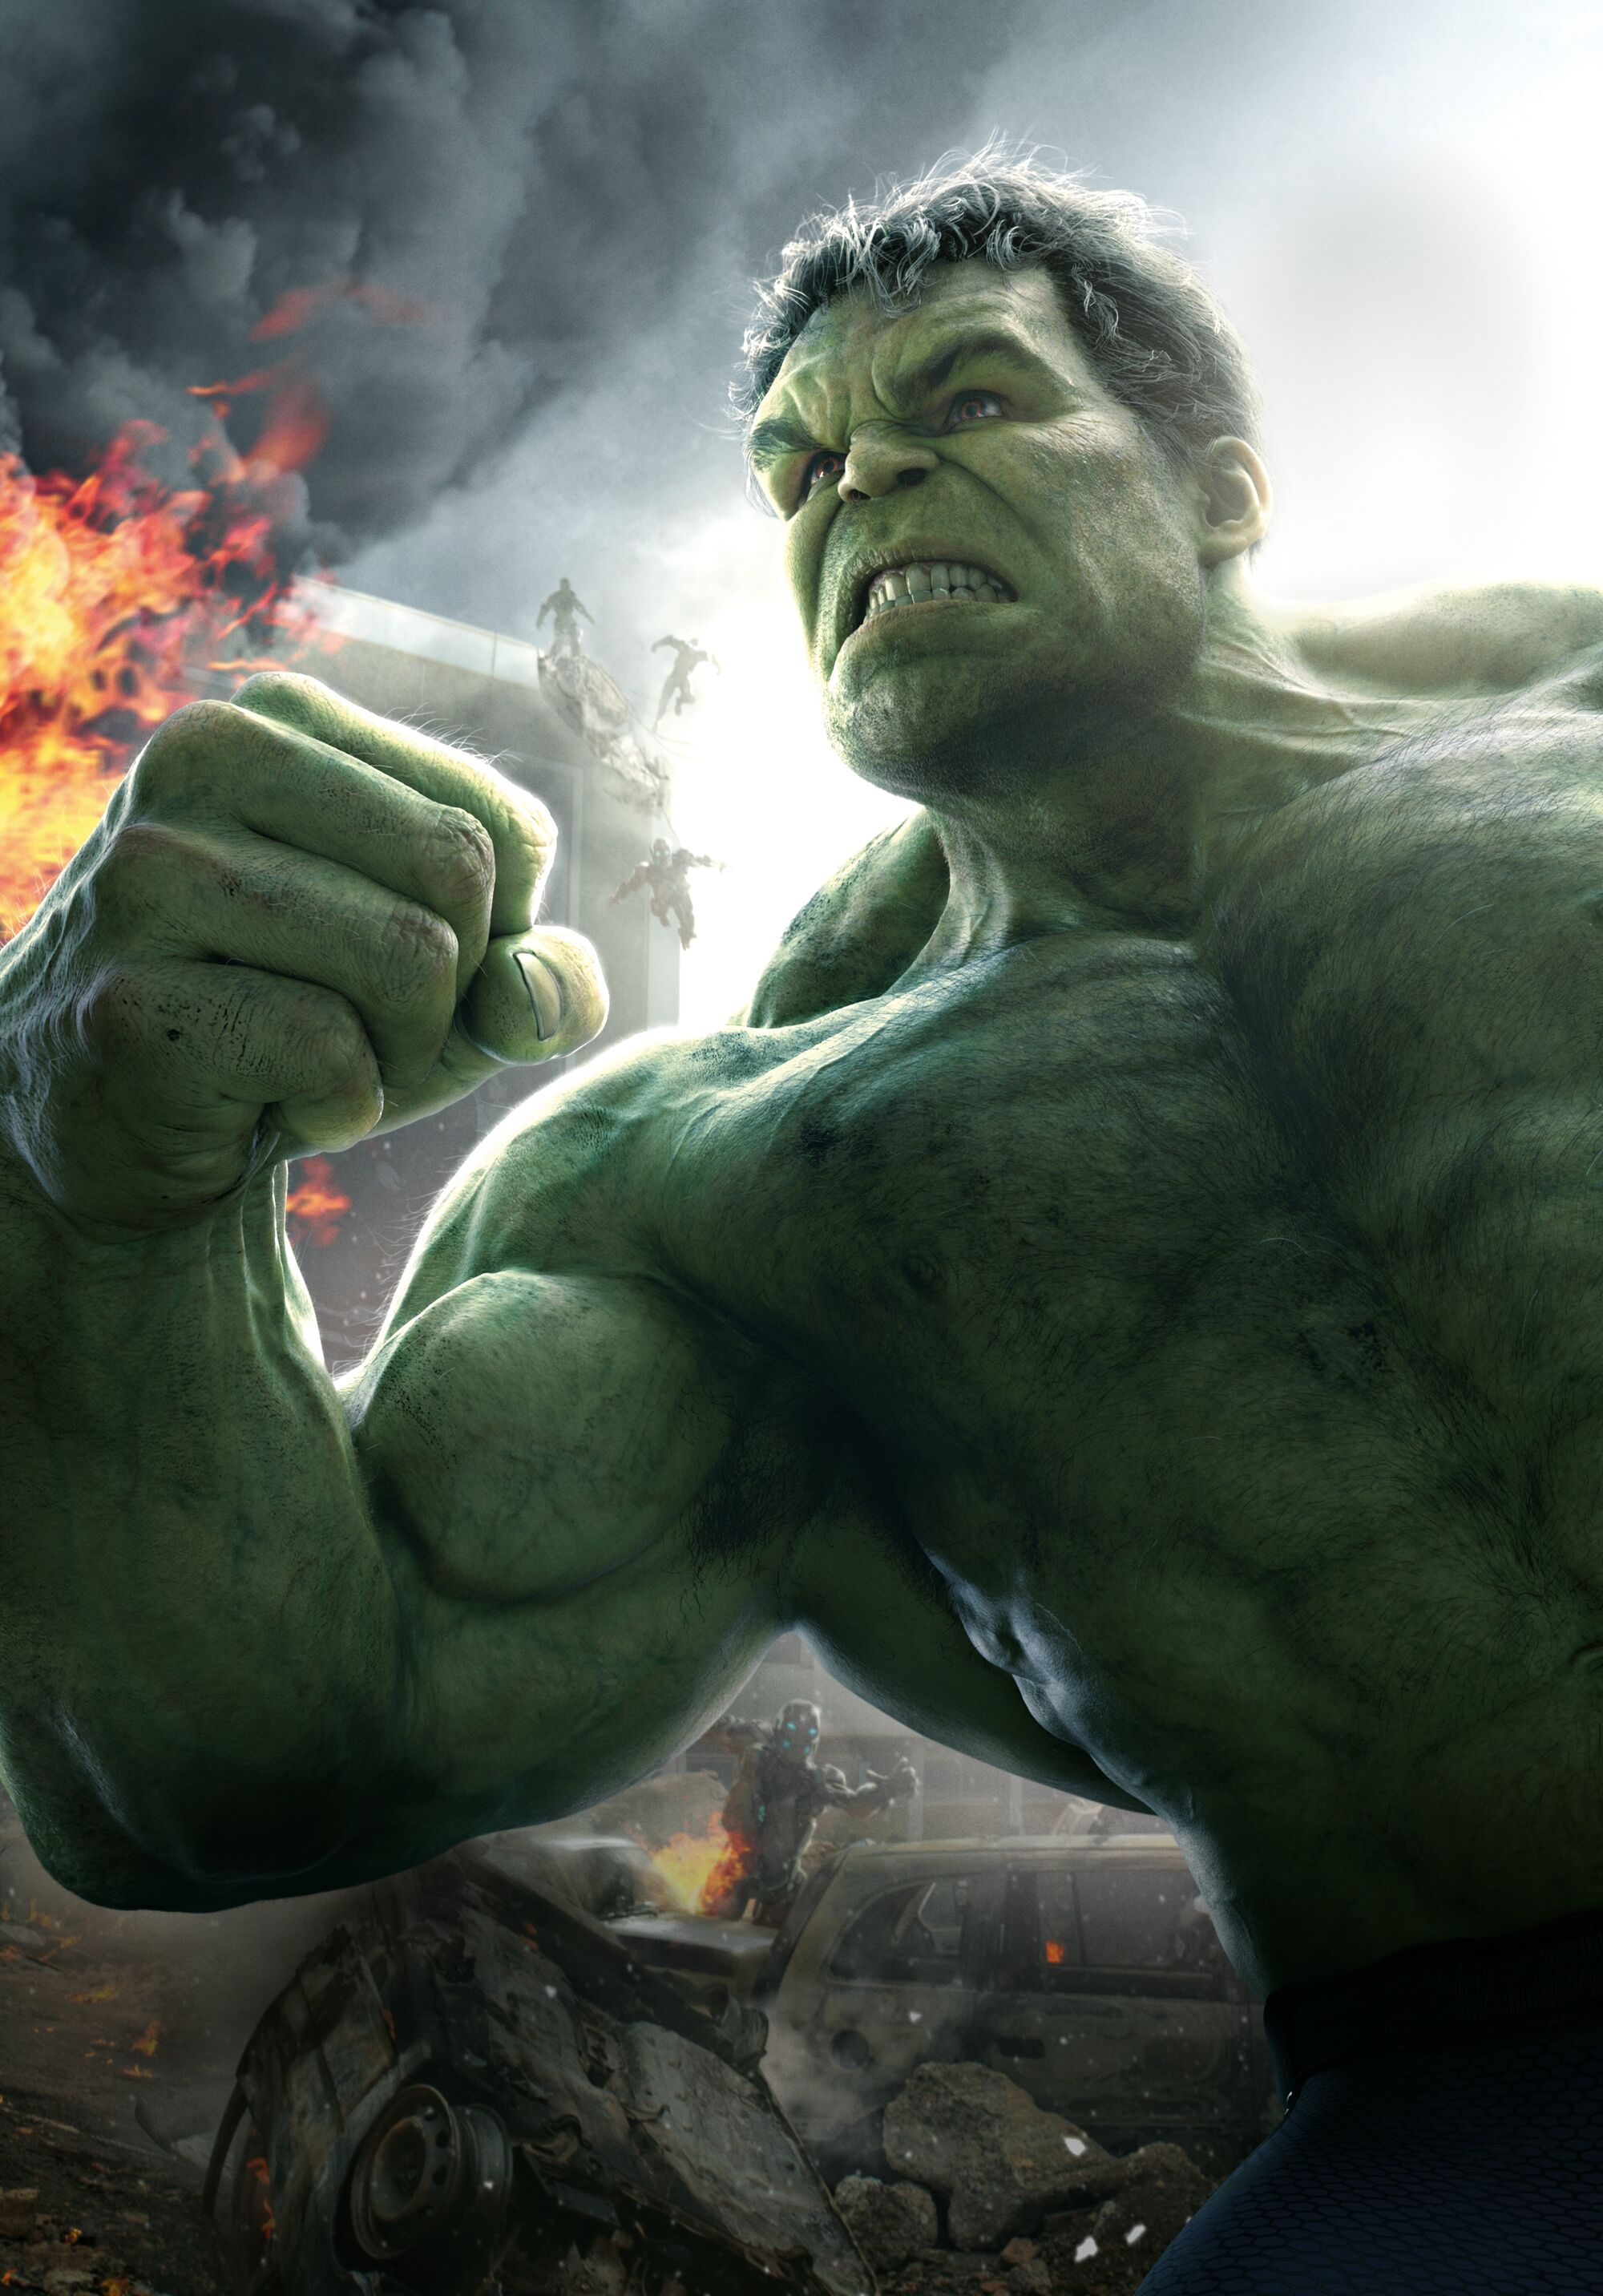 It's just a picture of Influential The Hulk Images